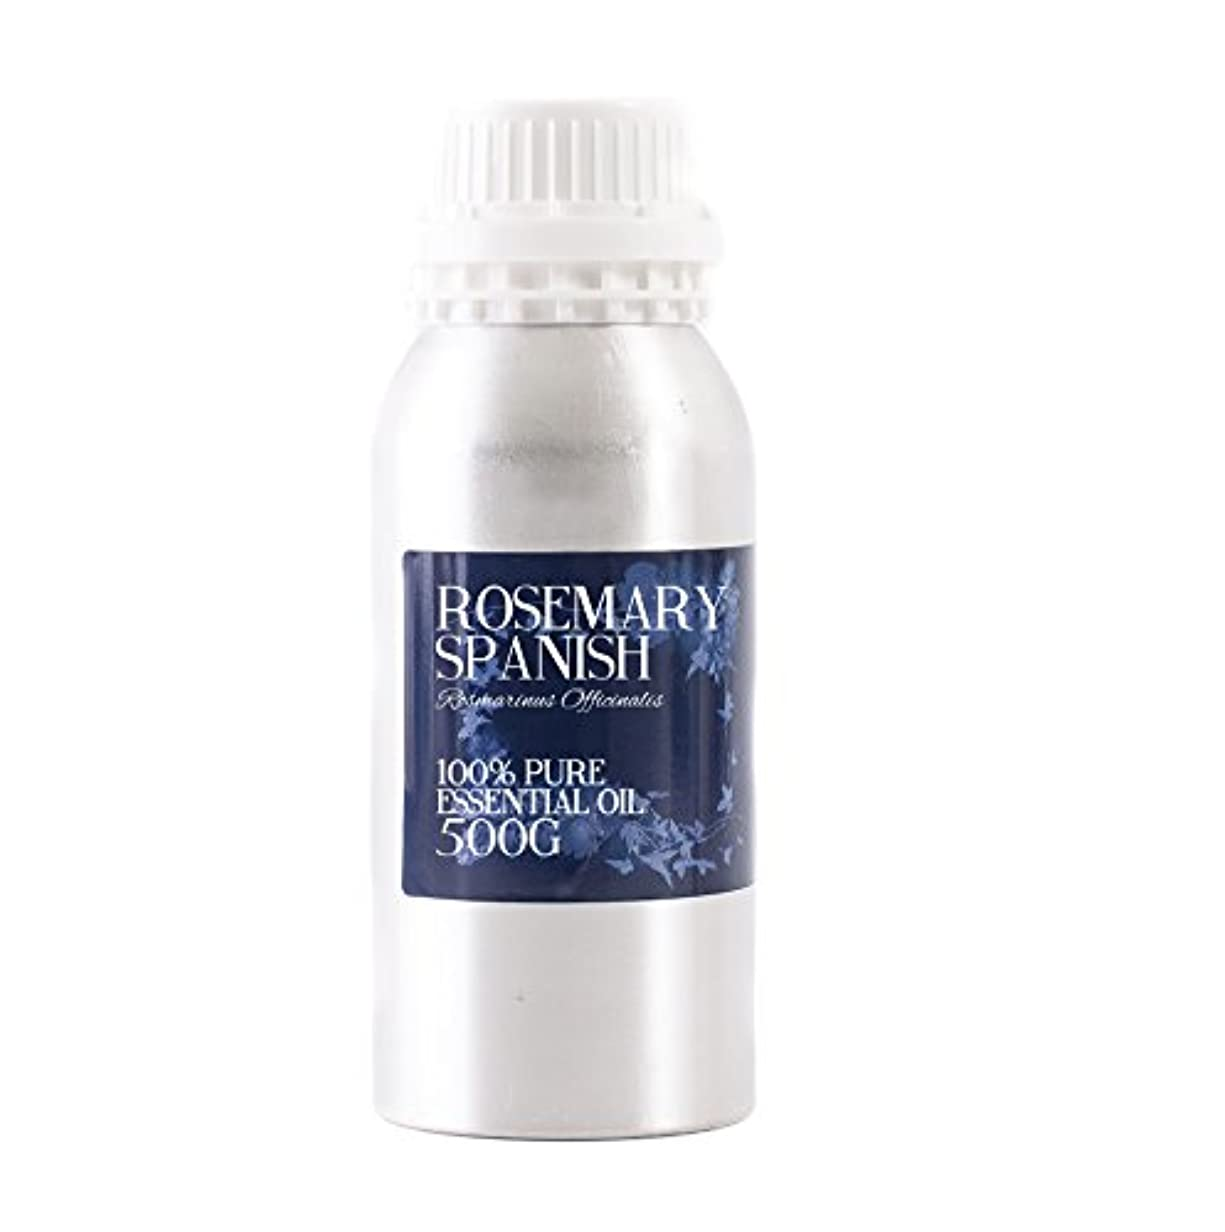 モザイク喜び発生Mystic Moments | Rosemary Spanish Essential Oil - 500g - 100% Pure